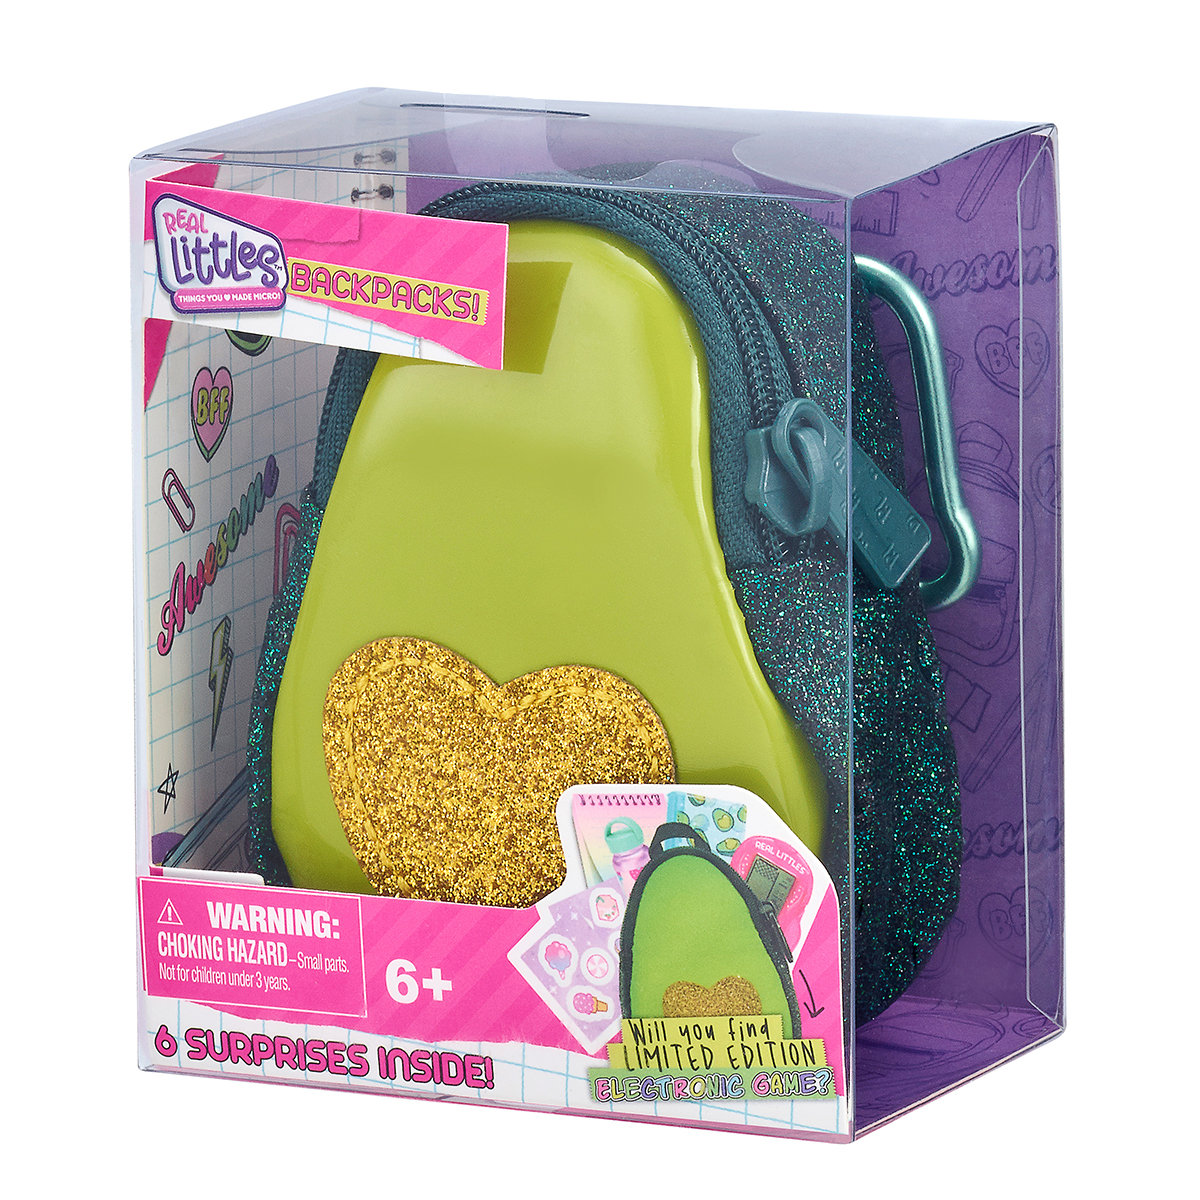 Mini ghiozdanel cu 6 surprize, Real Littles, Themed, S3, Verde